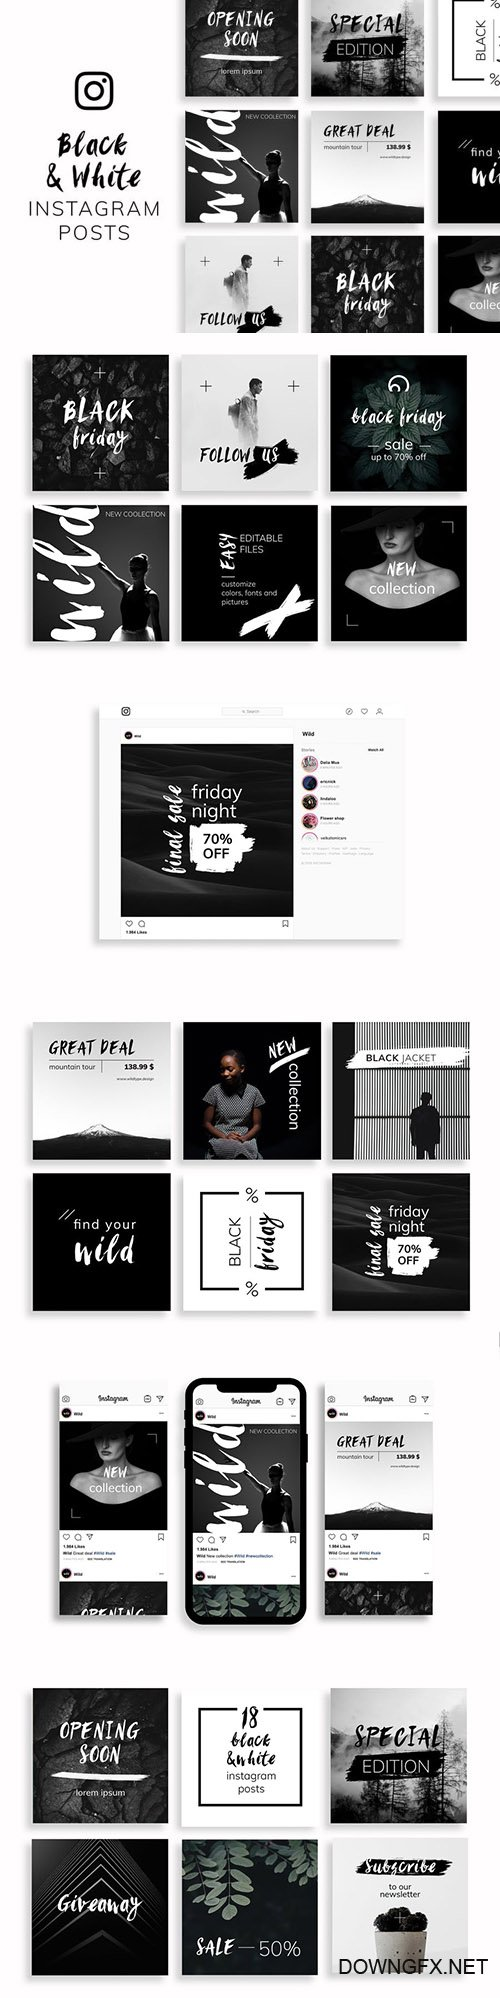 Black & White Instagram Posts Template